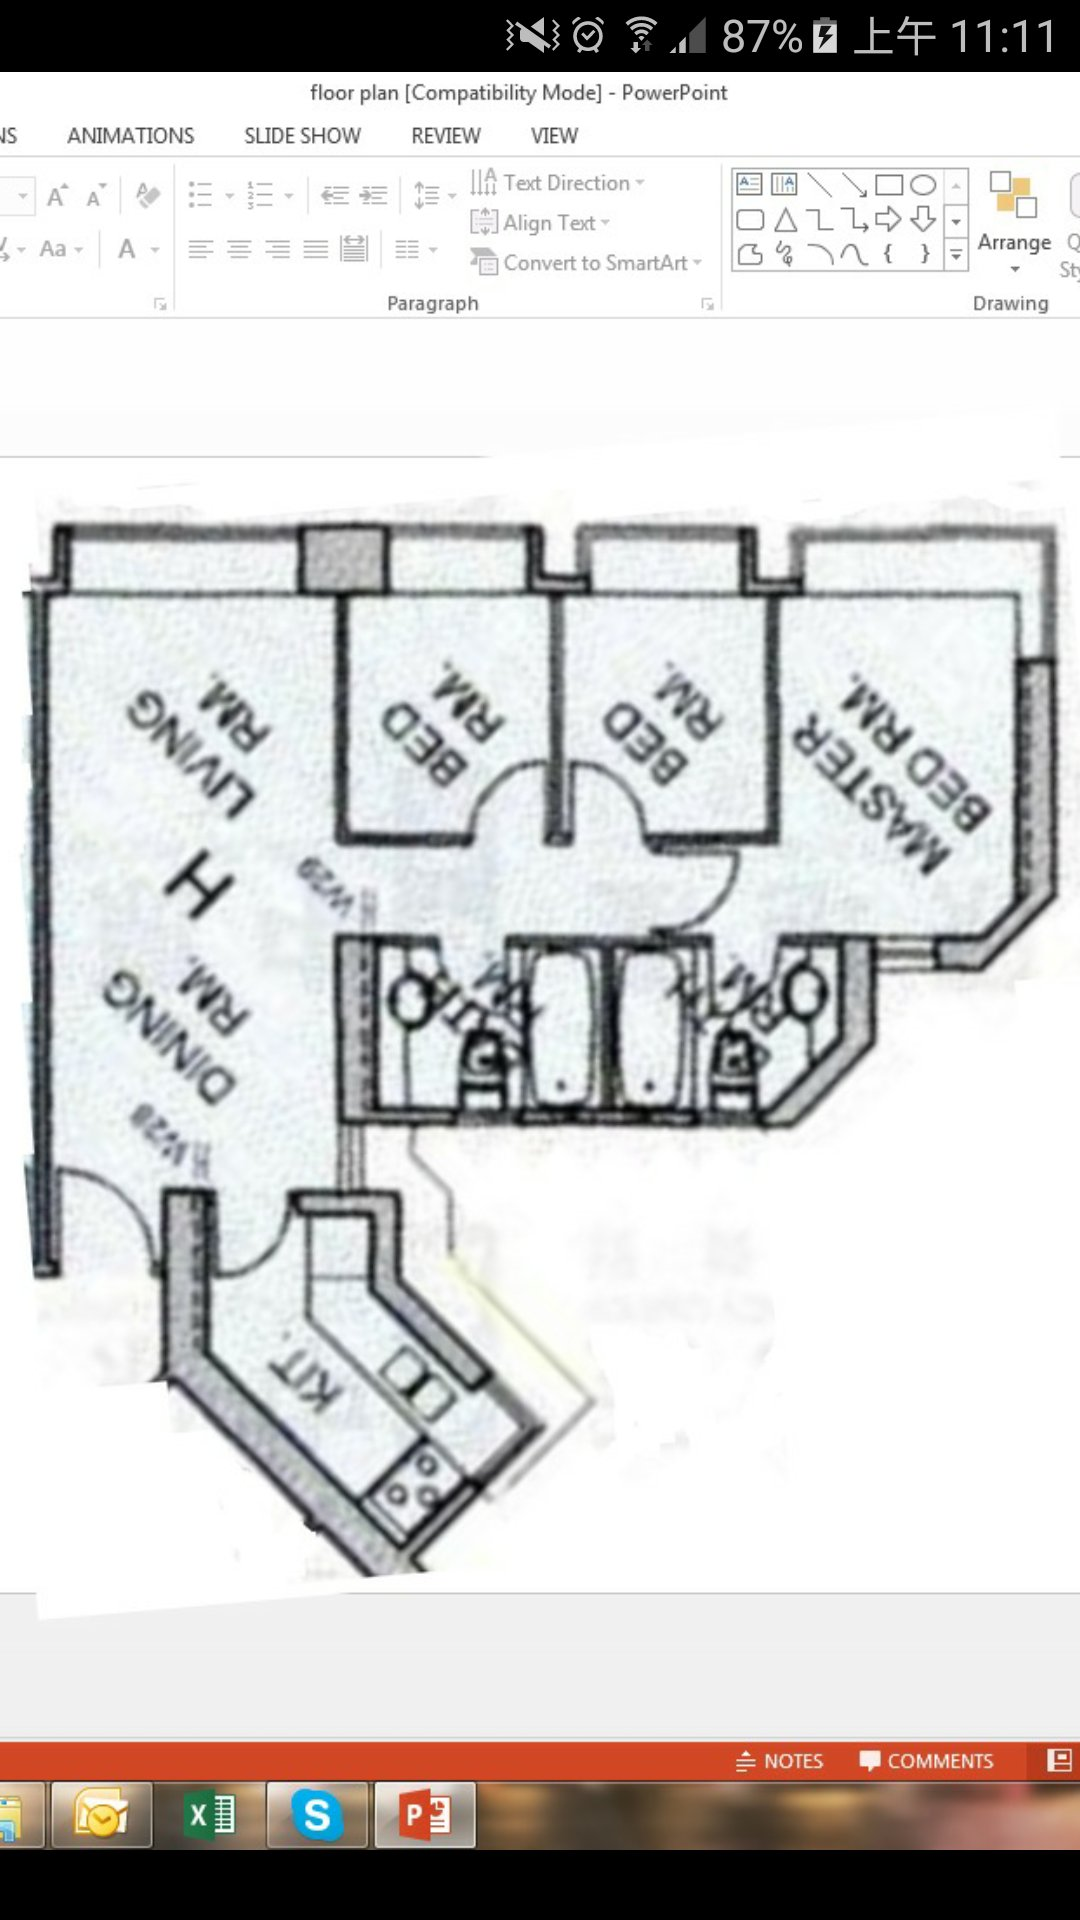 bid_deco_floorplan_1501809283.jpg